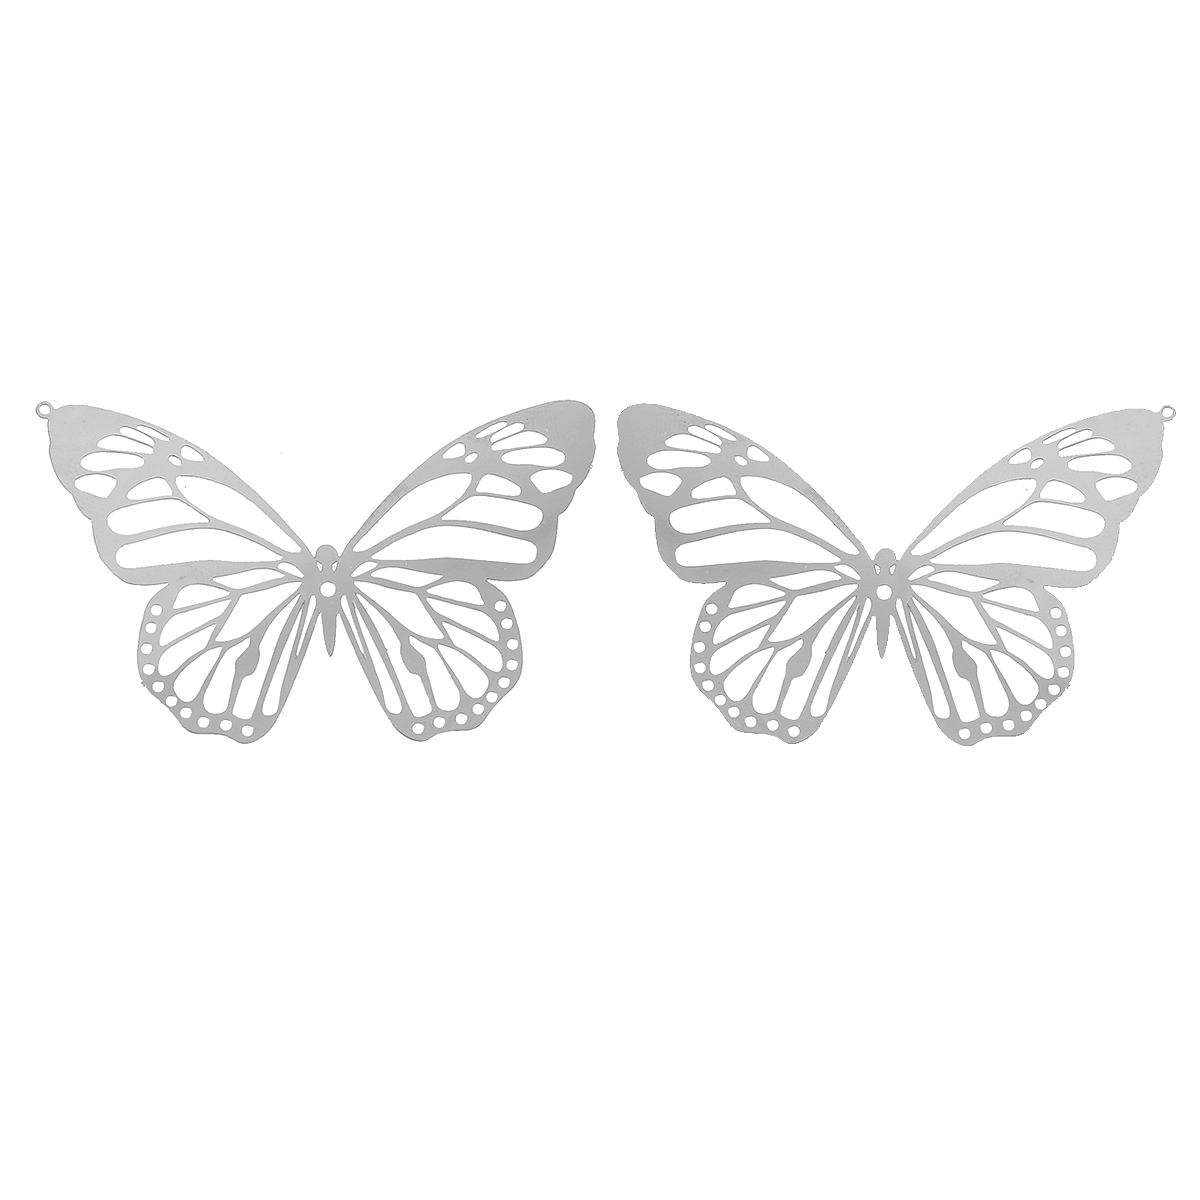 Fashion Stainless Steel Charm Pendants Butterfly Dull  Color Hollow For DIY Jewelry Making 51mm(2